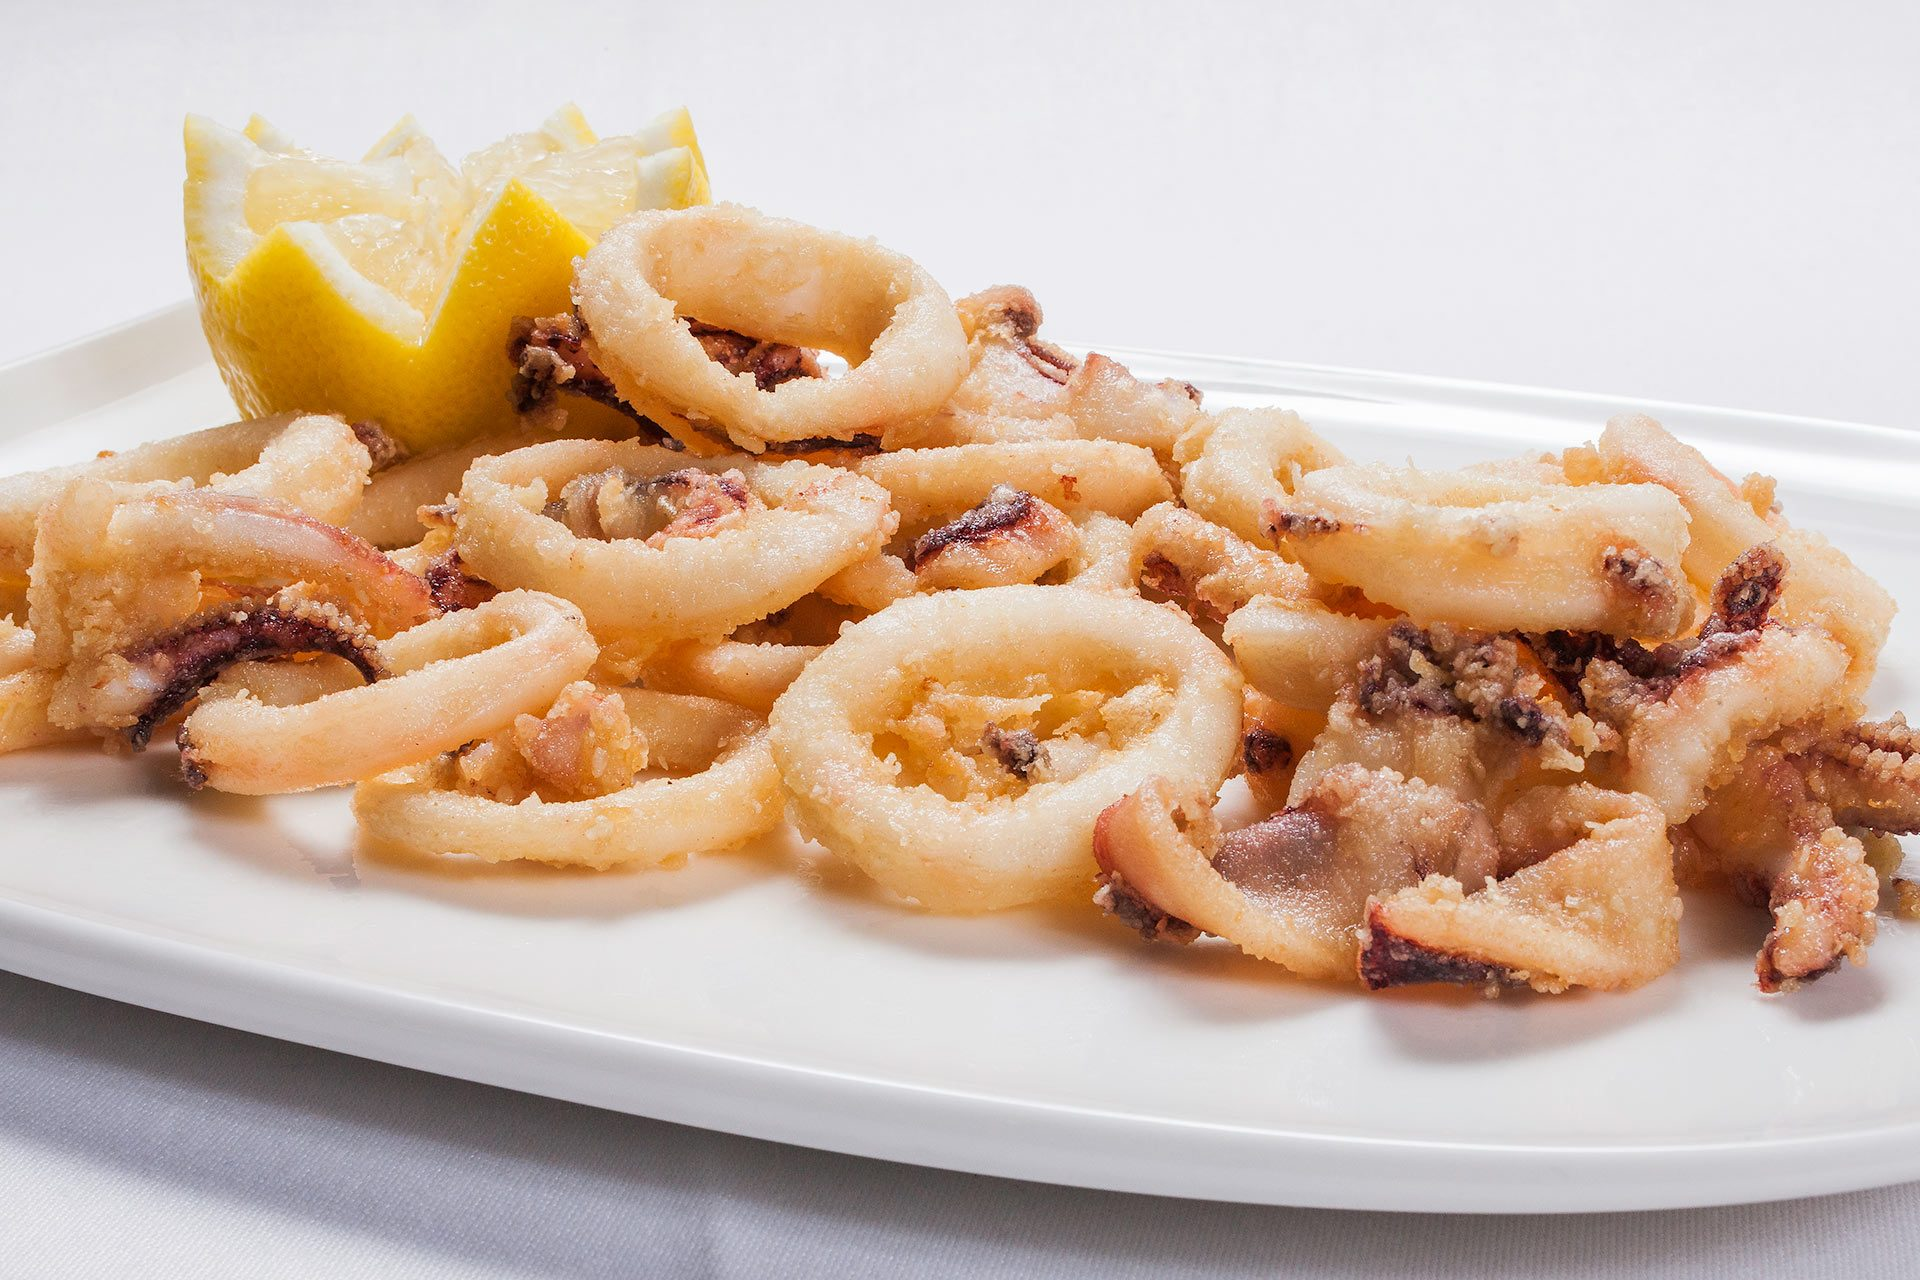 Fresh fried squids at Casa Ramón Restaurant in Oviedo